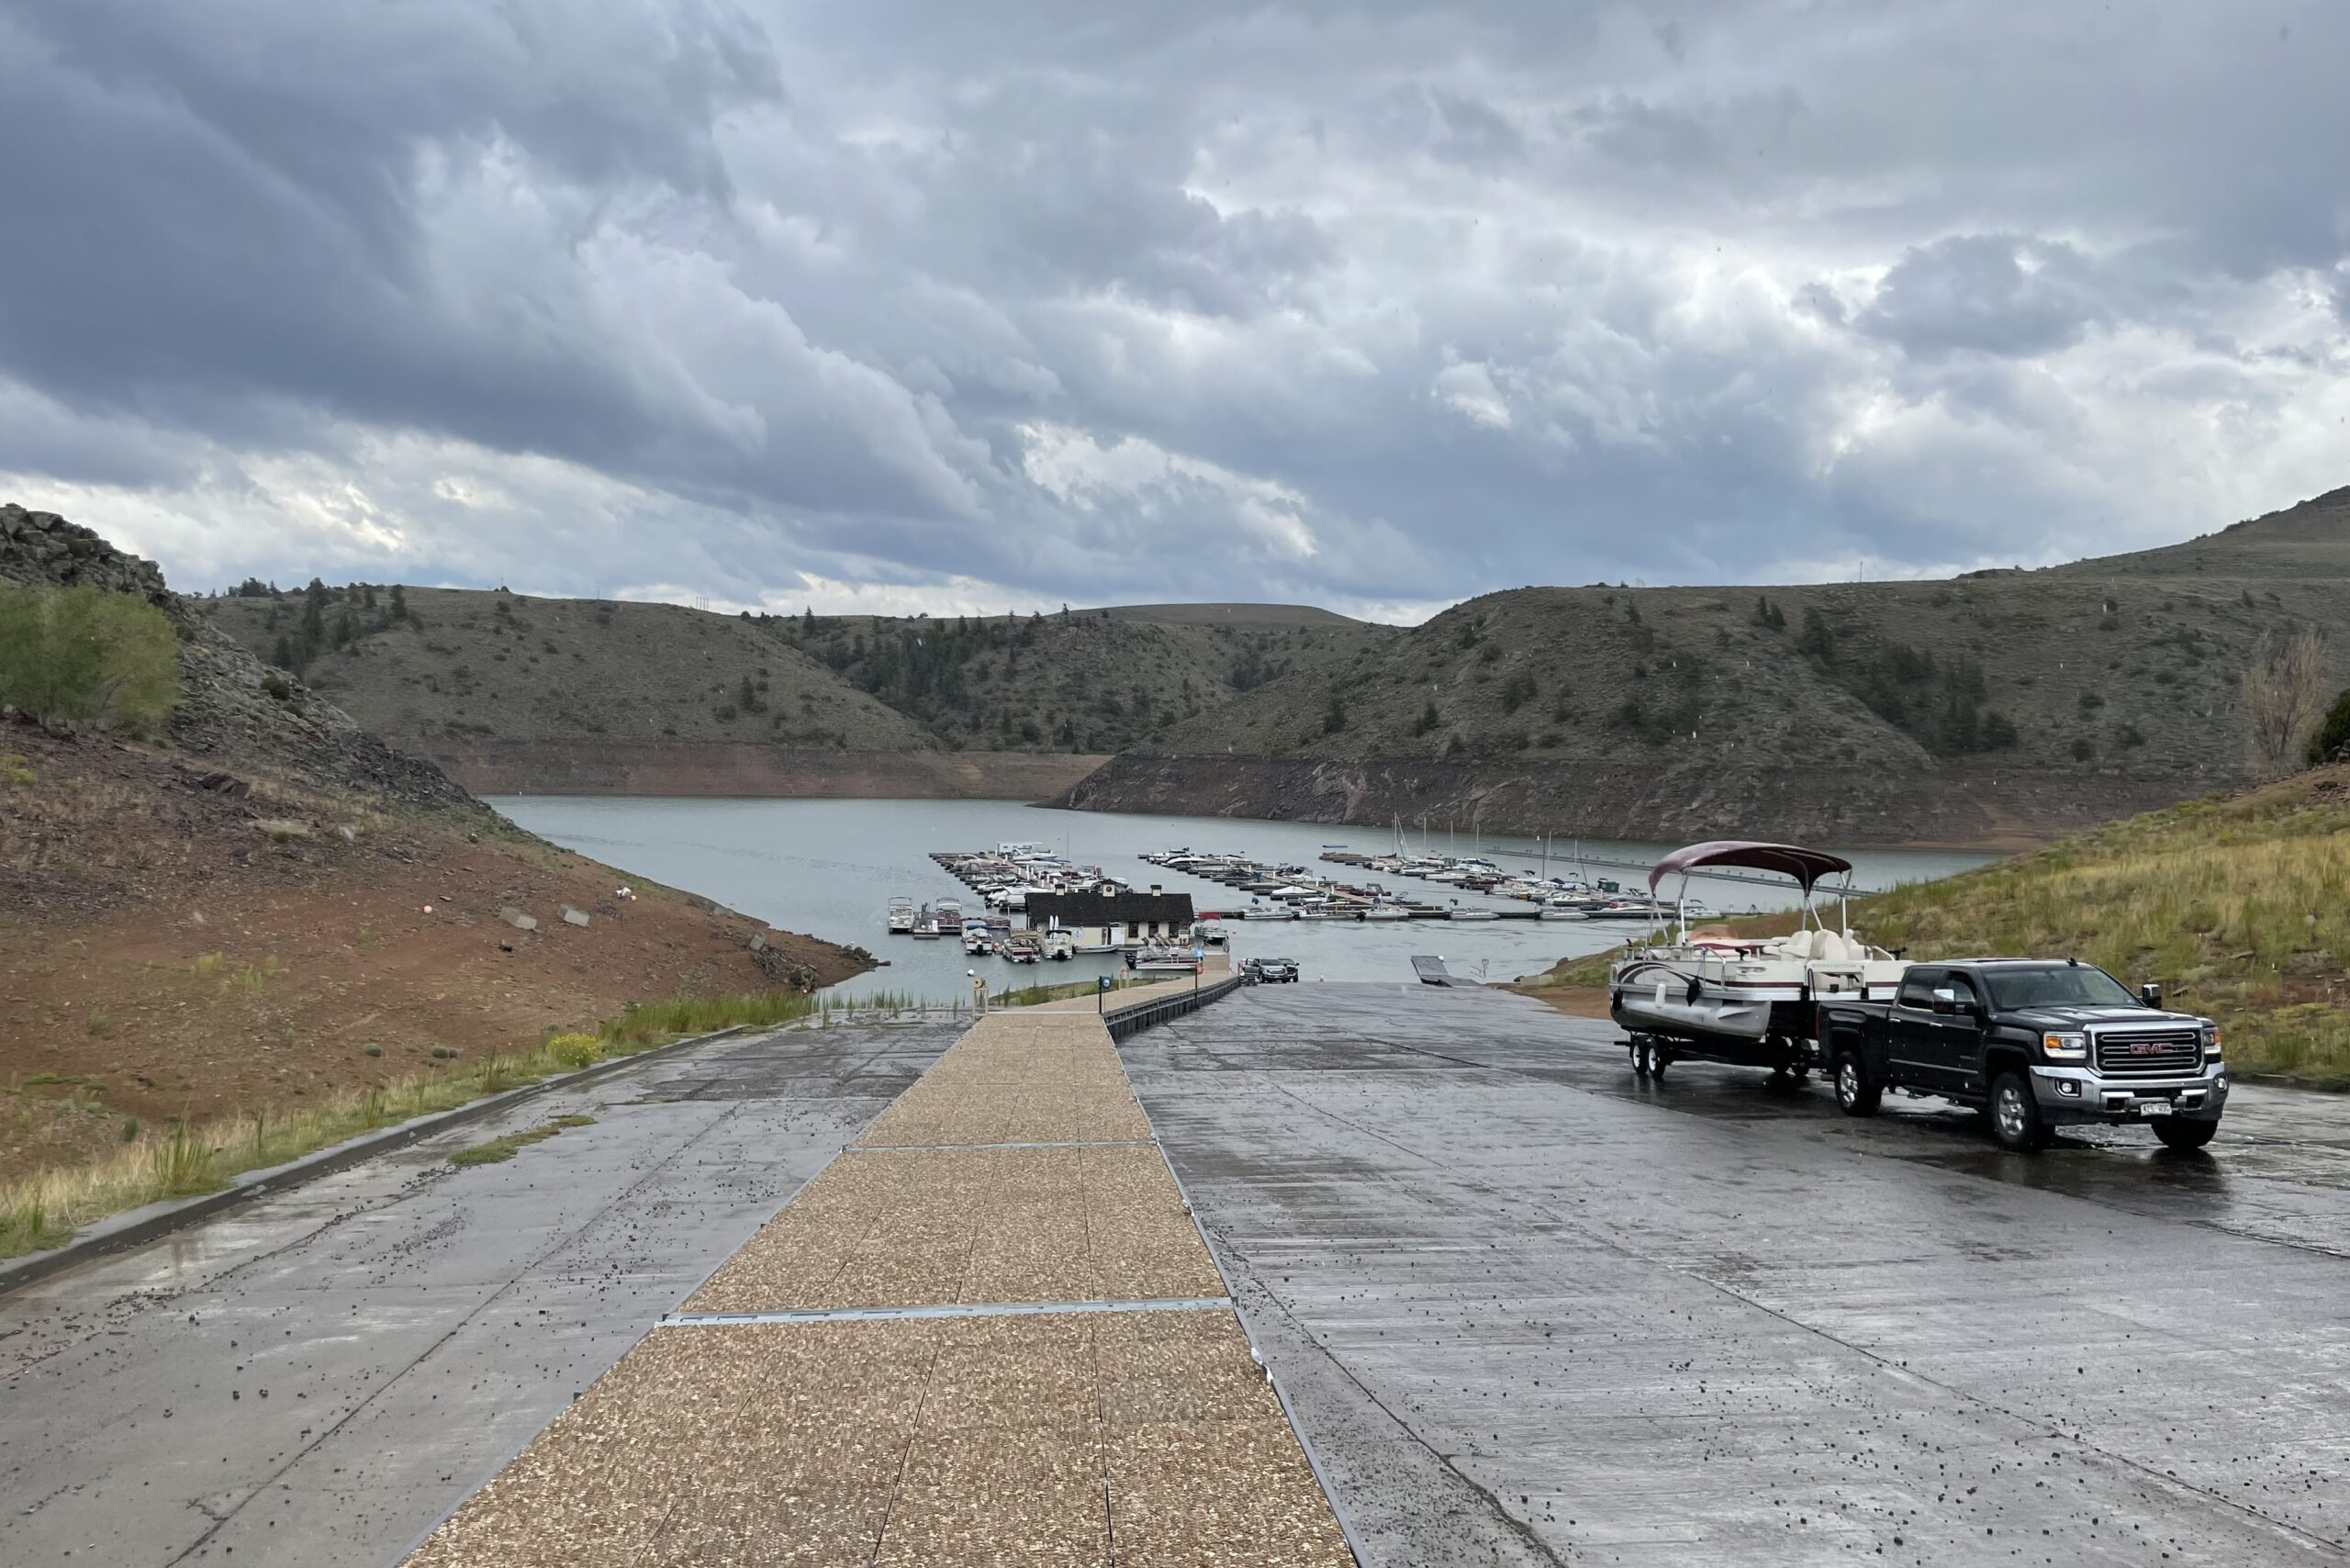 A truck hauls a boat up the ramp at Elk Creek Marina at Blue Mesa Reservoir on August 19, 2021.